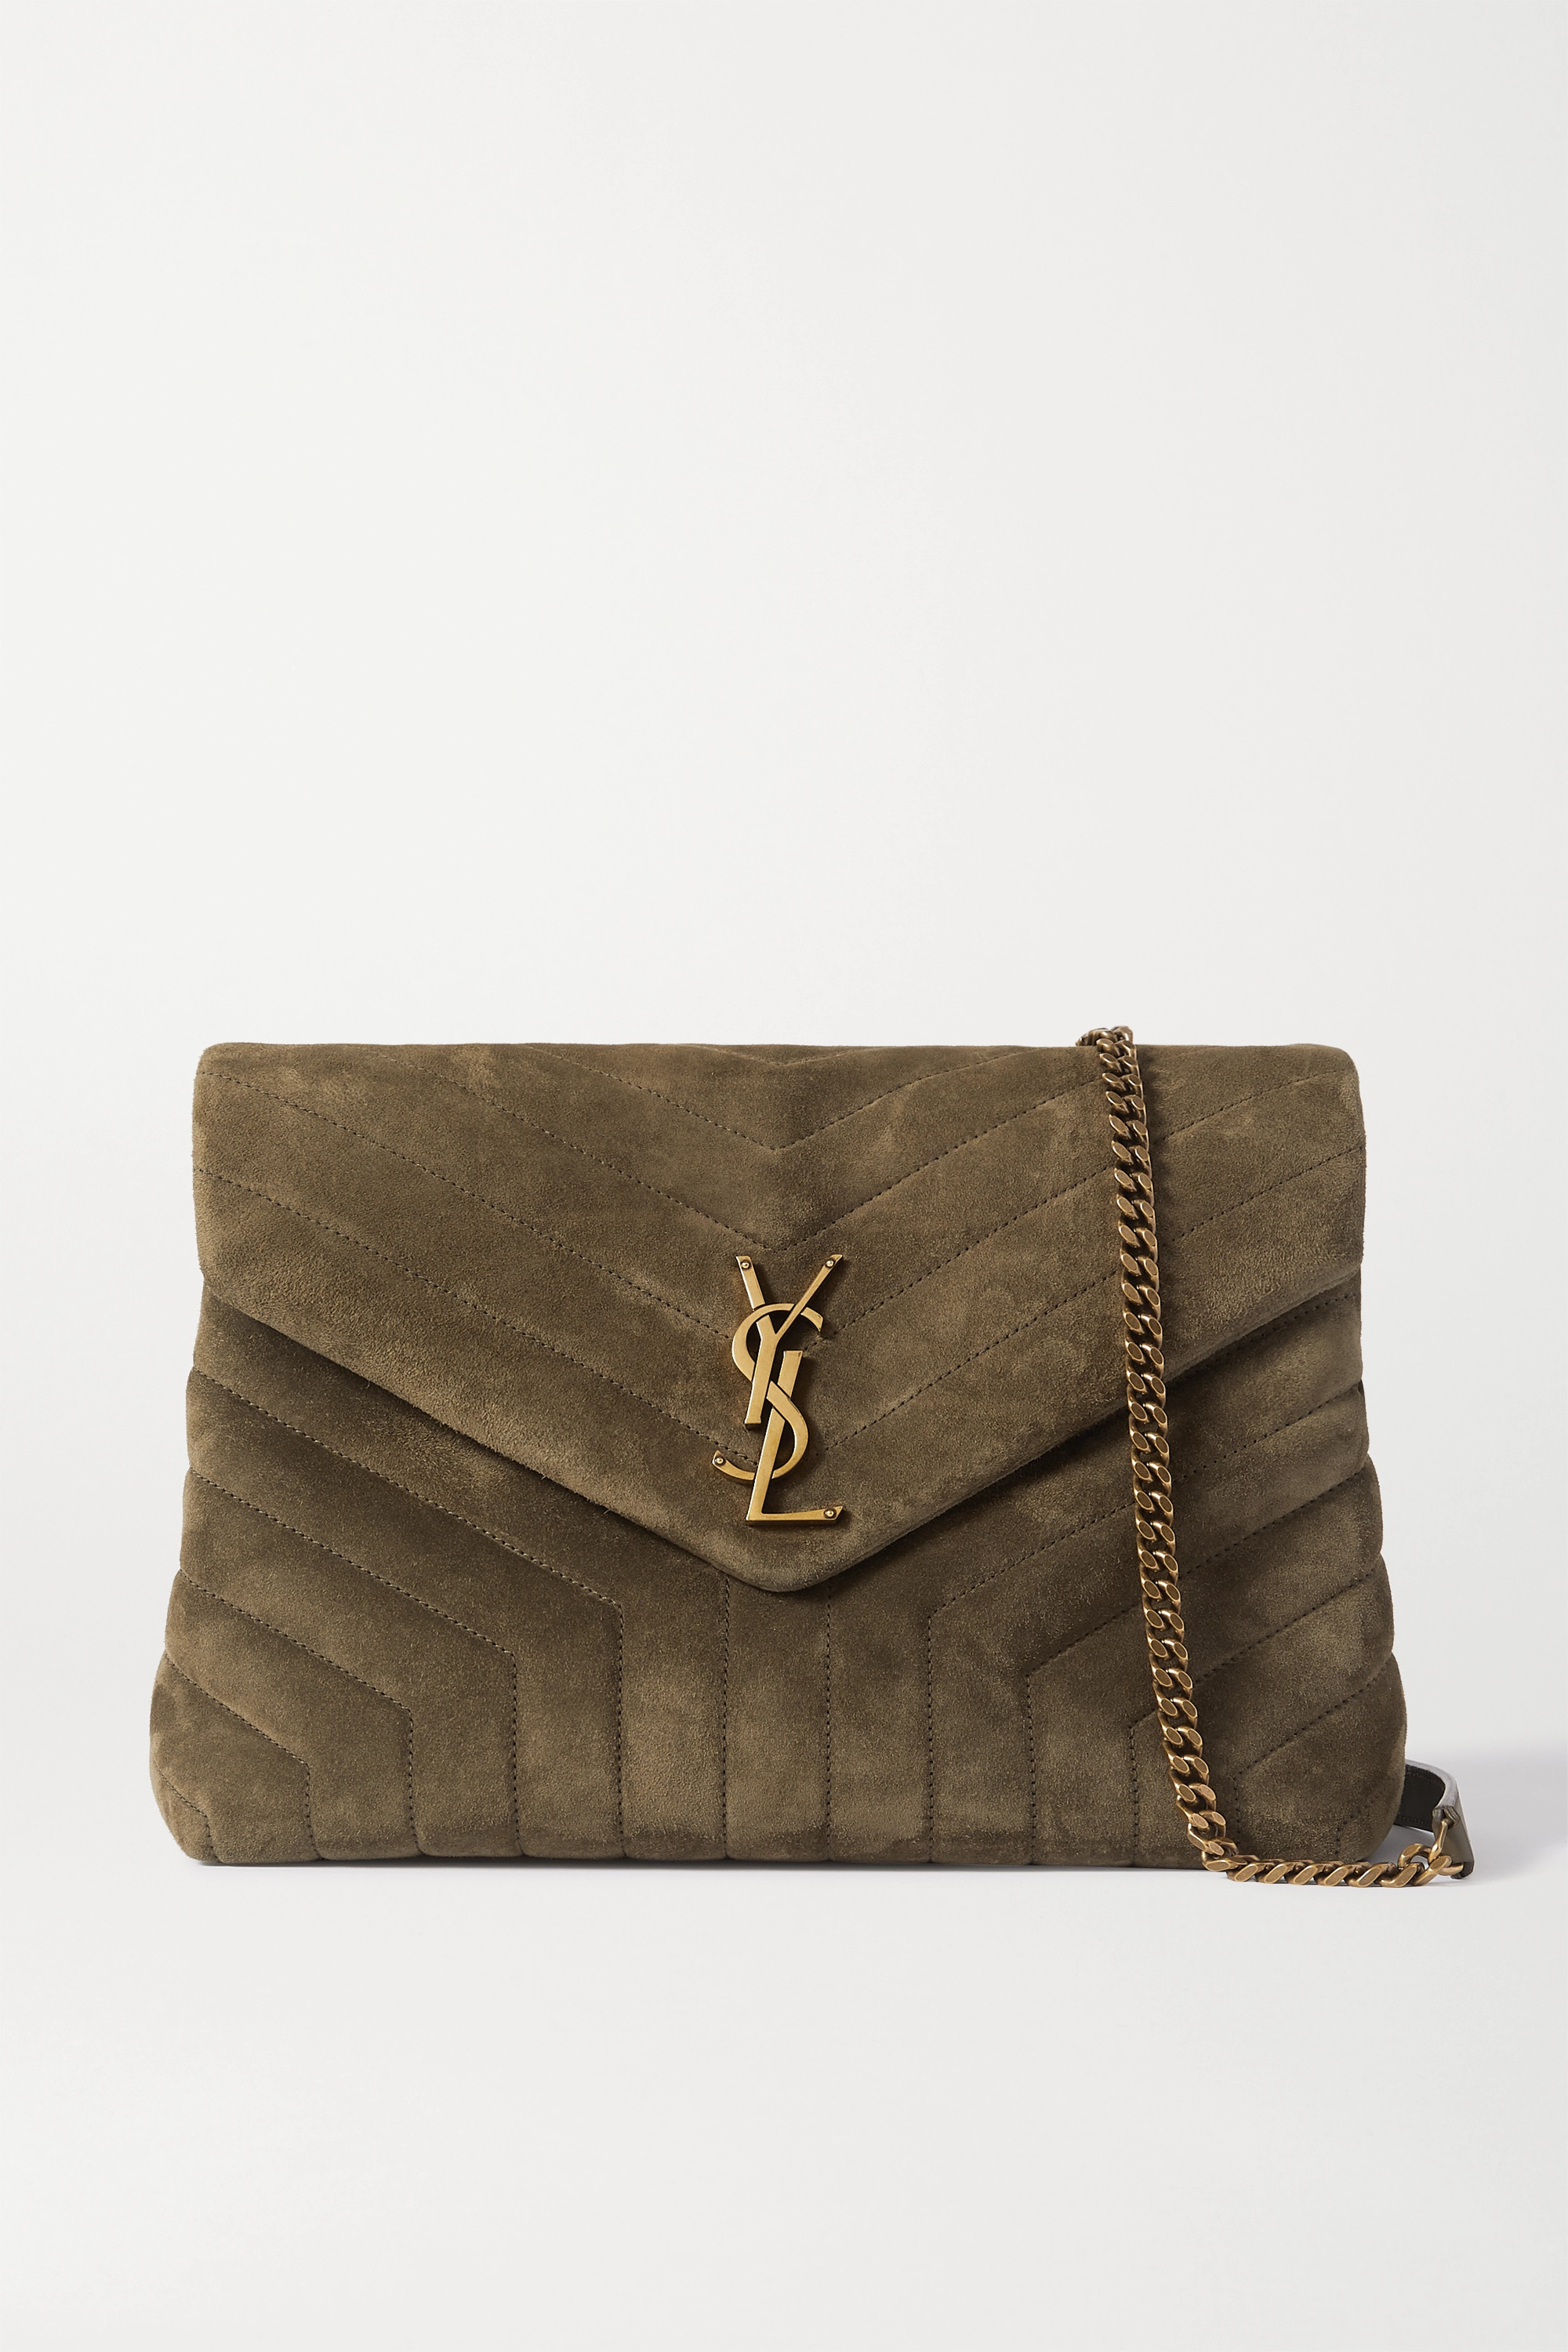 SAINT LAURENT Loulou medium quilted suede shoulder bag